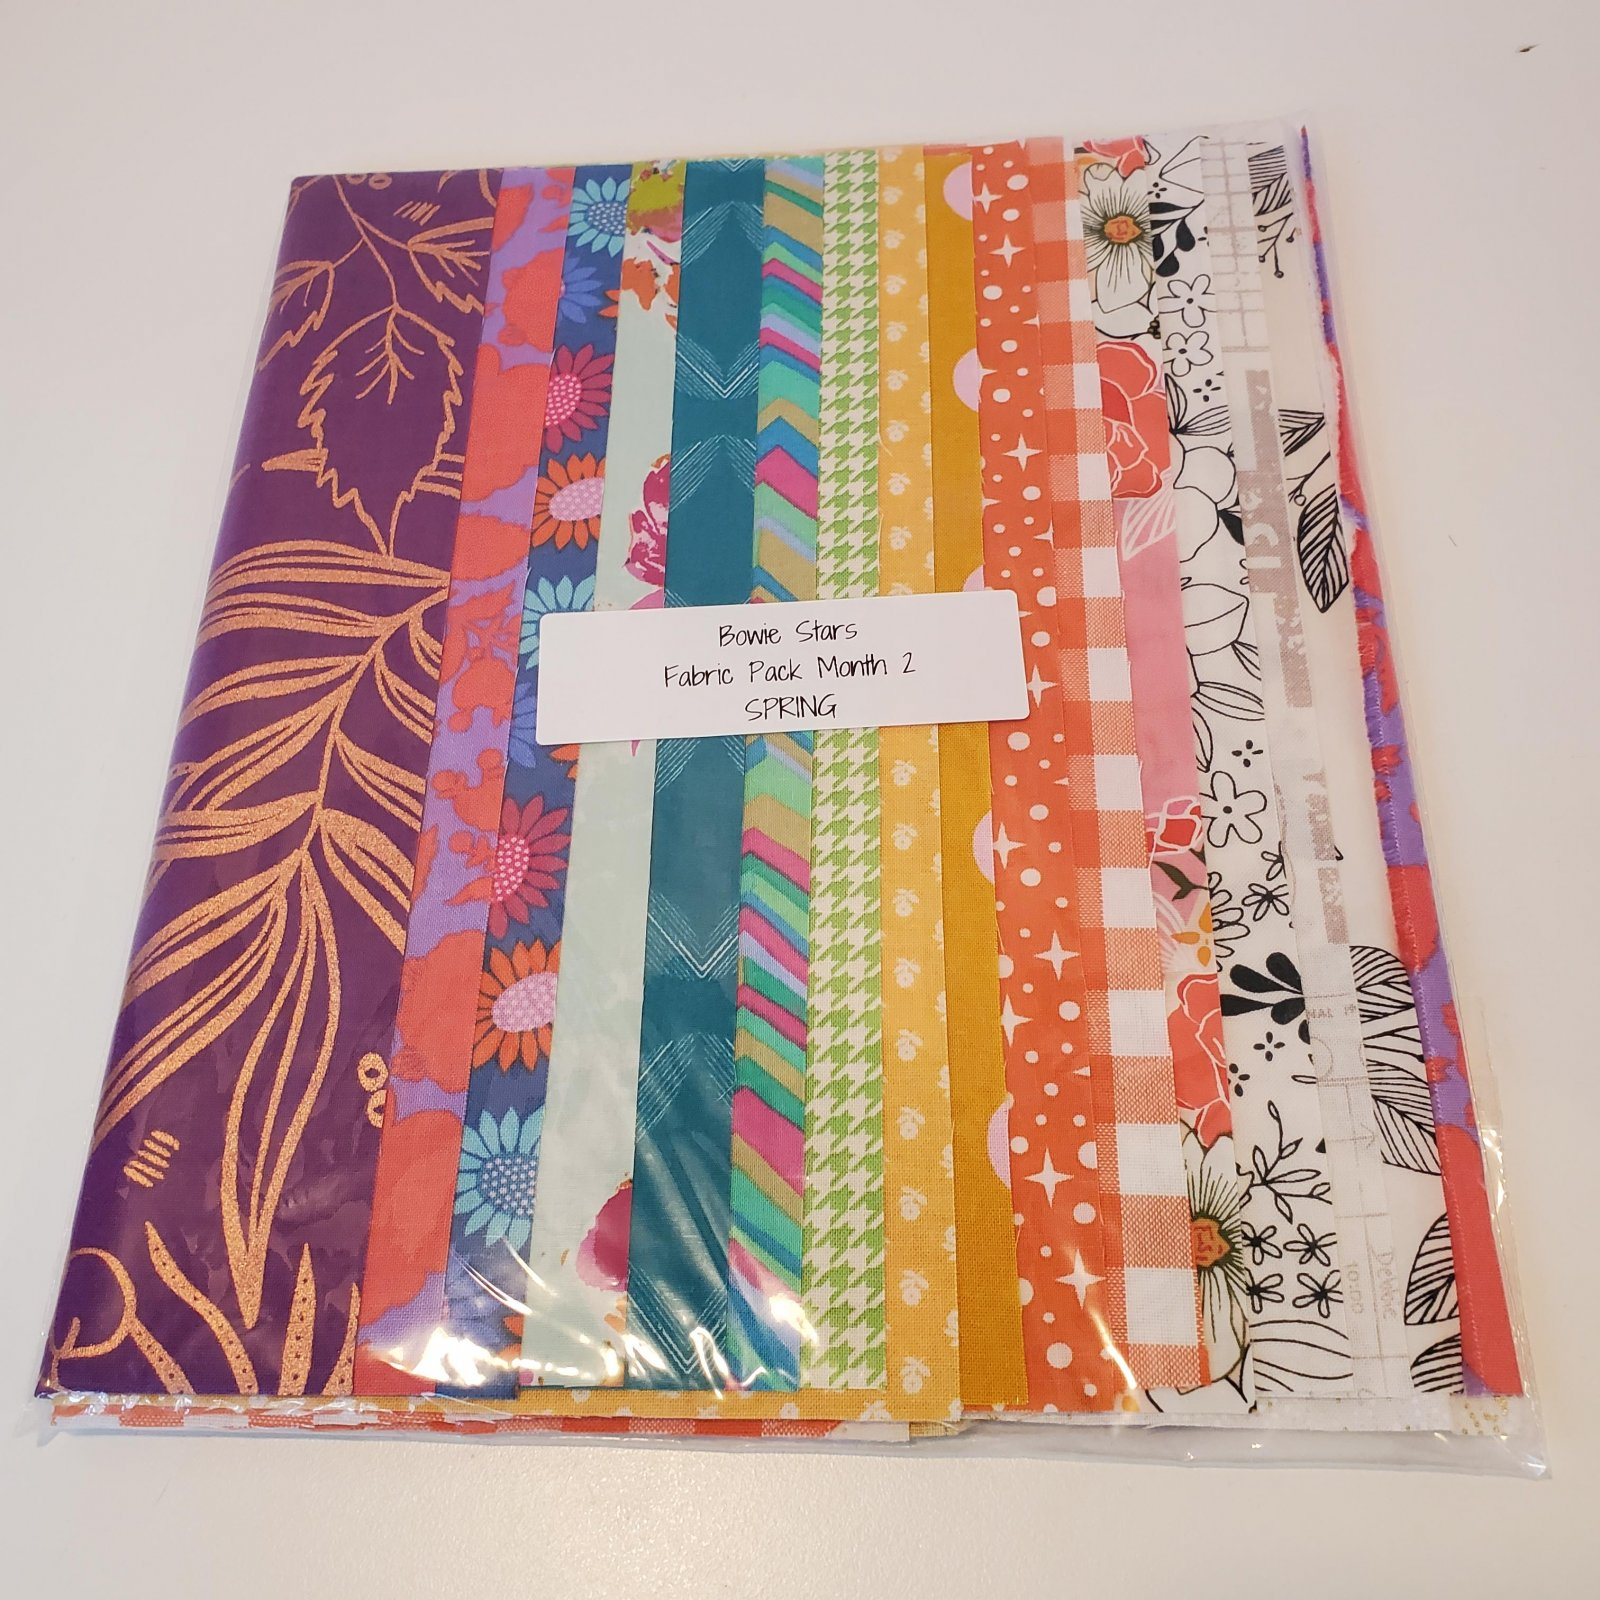 Bowie Stars Fabric Pack Month 2 - Spring